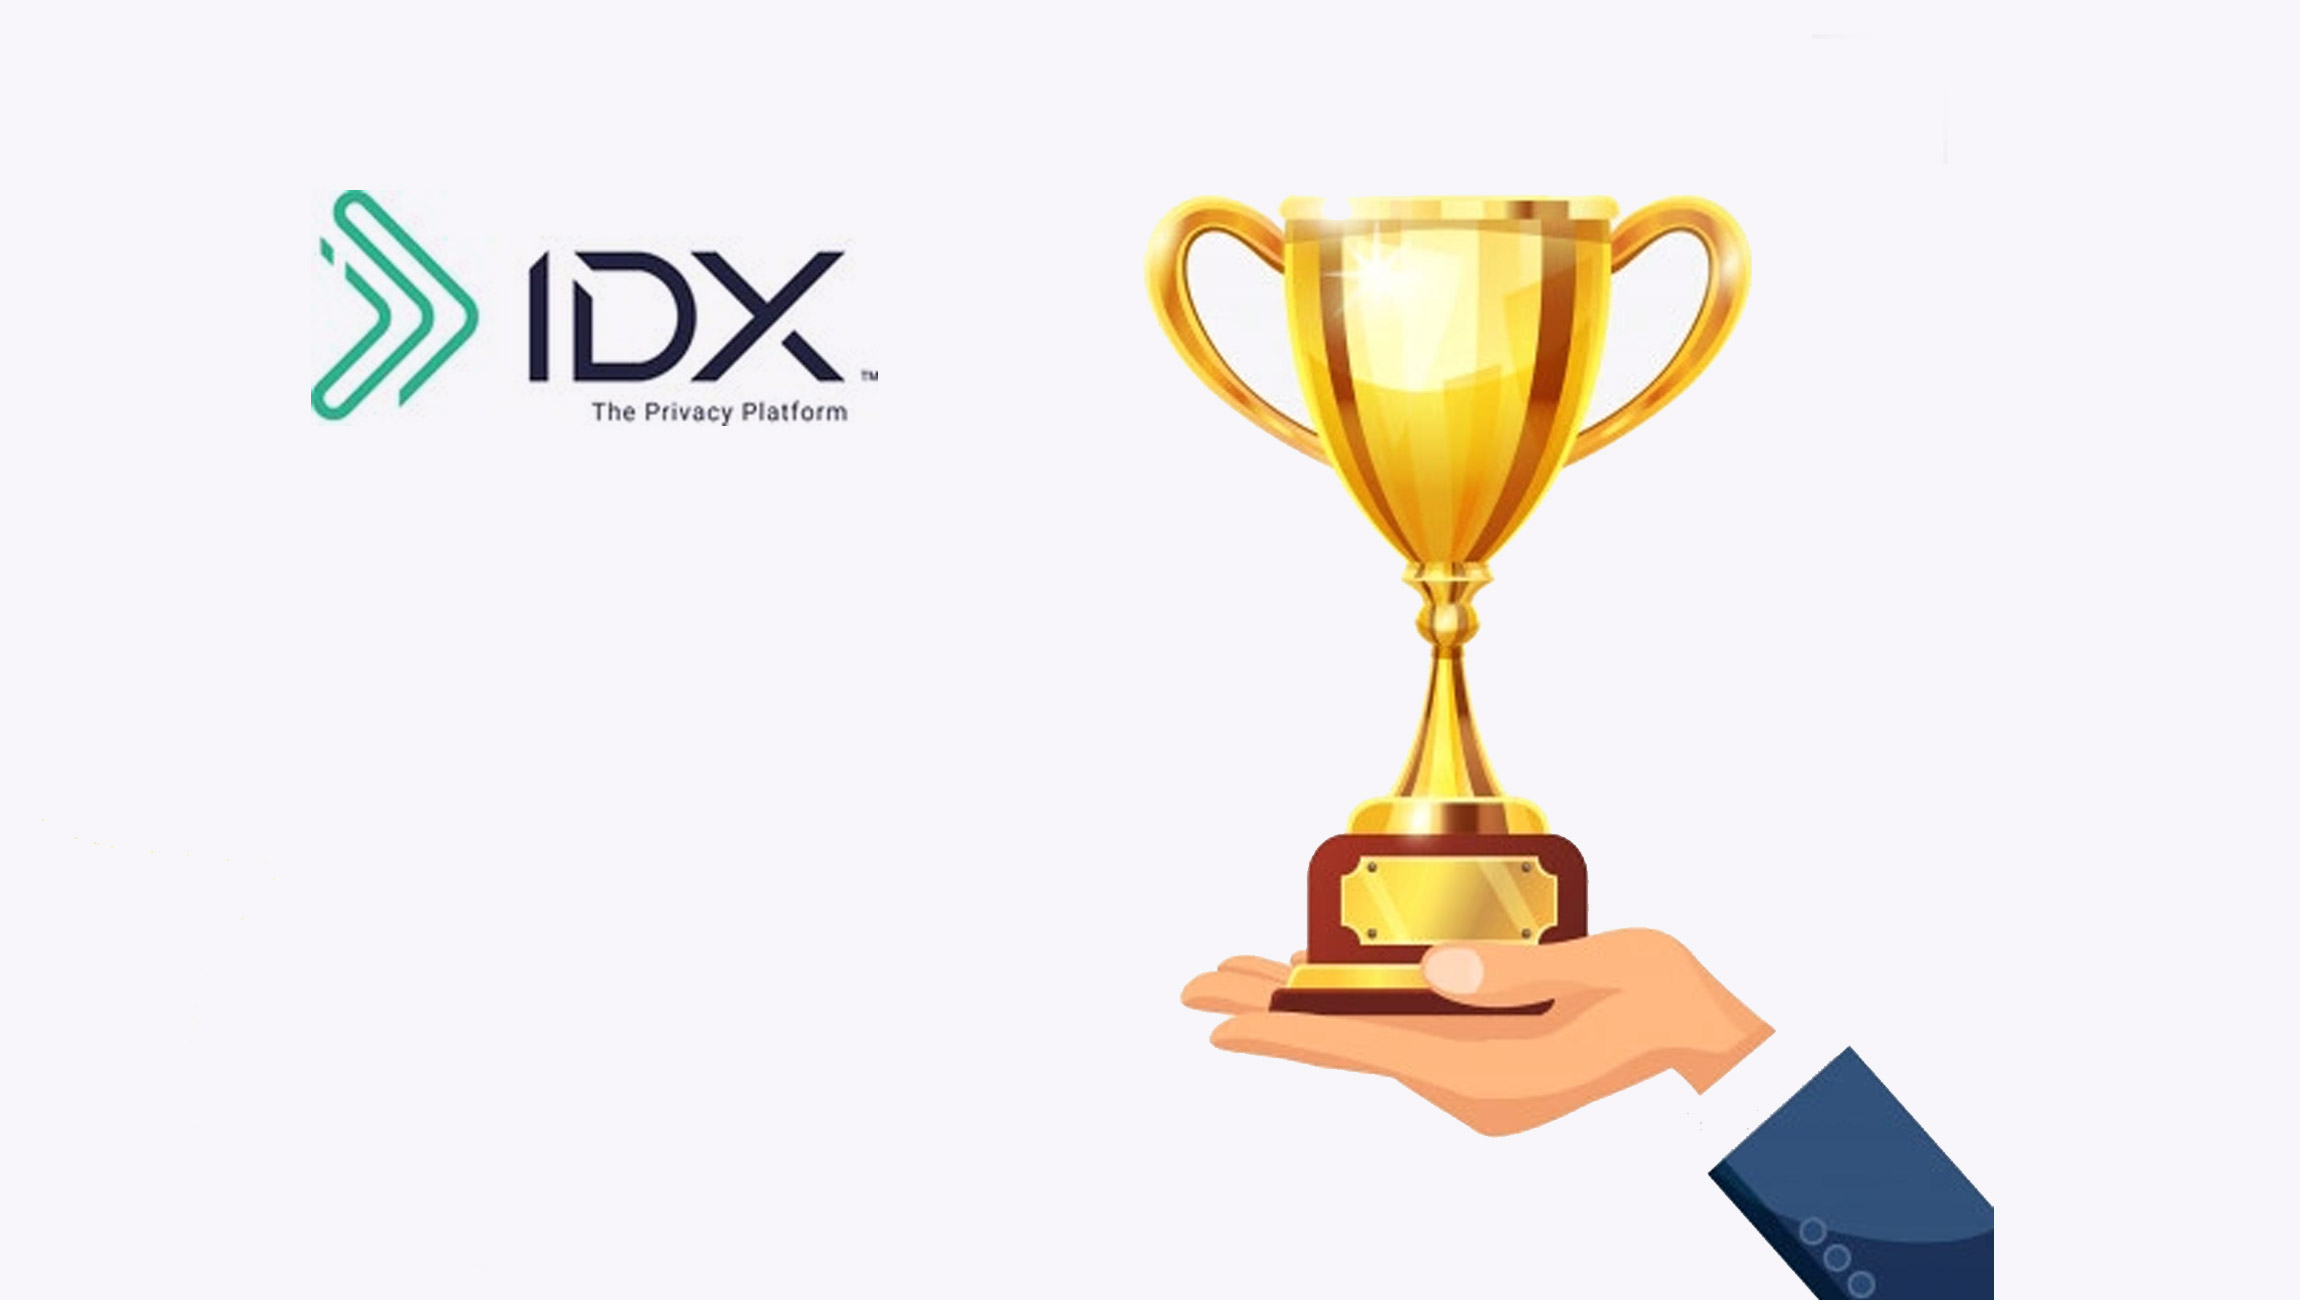 IDX Recognized as Editor's Choice for Privacy Management Software in Global InfoSec Awards